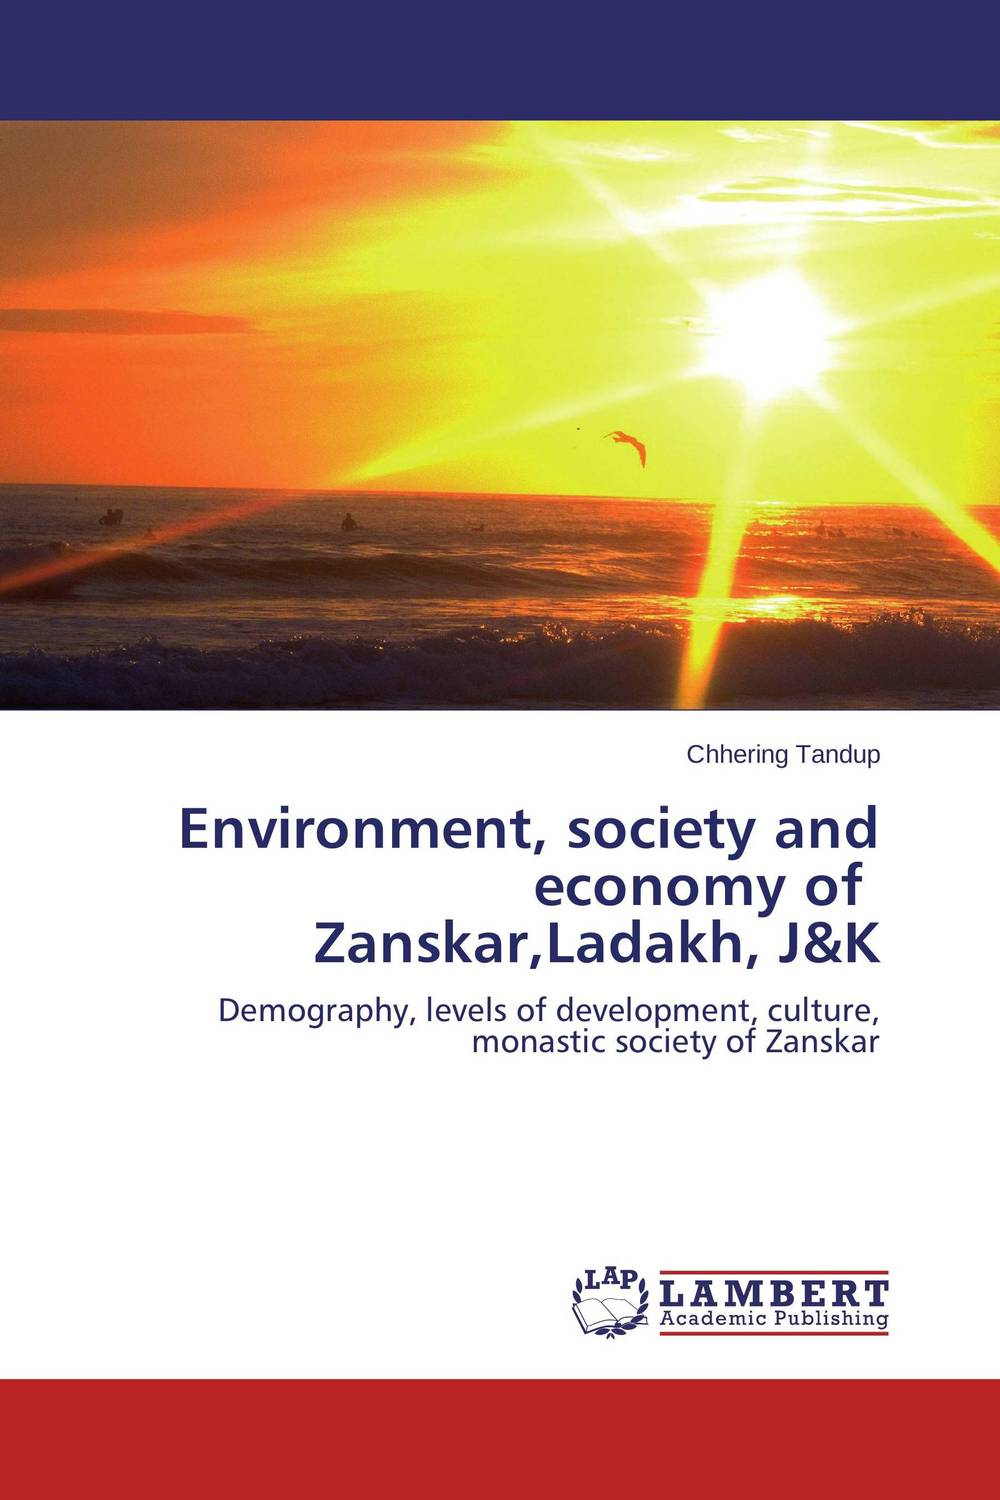 Environment, society and economy of Zanskar,Ladakh, J&K сысоев п сысоева л issues in us culture and society амер культура и общество